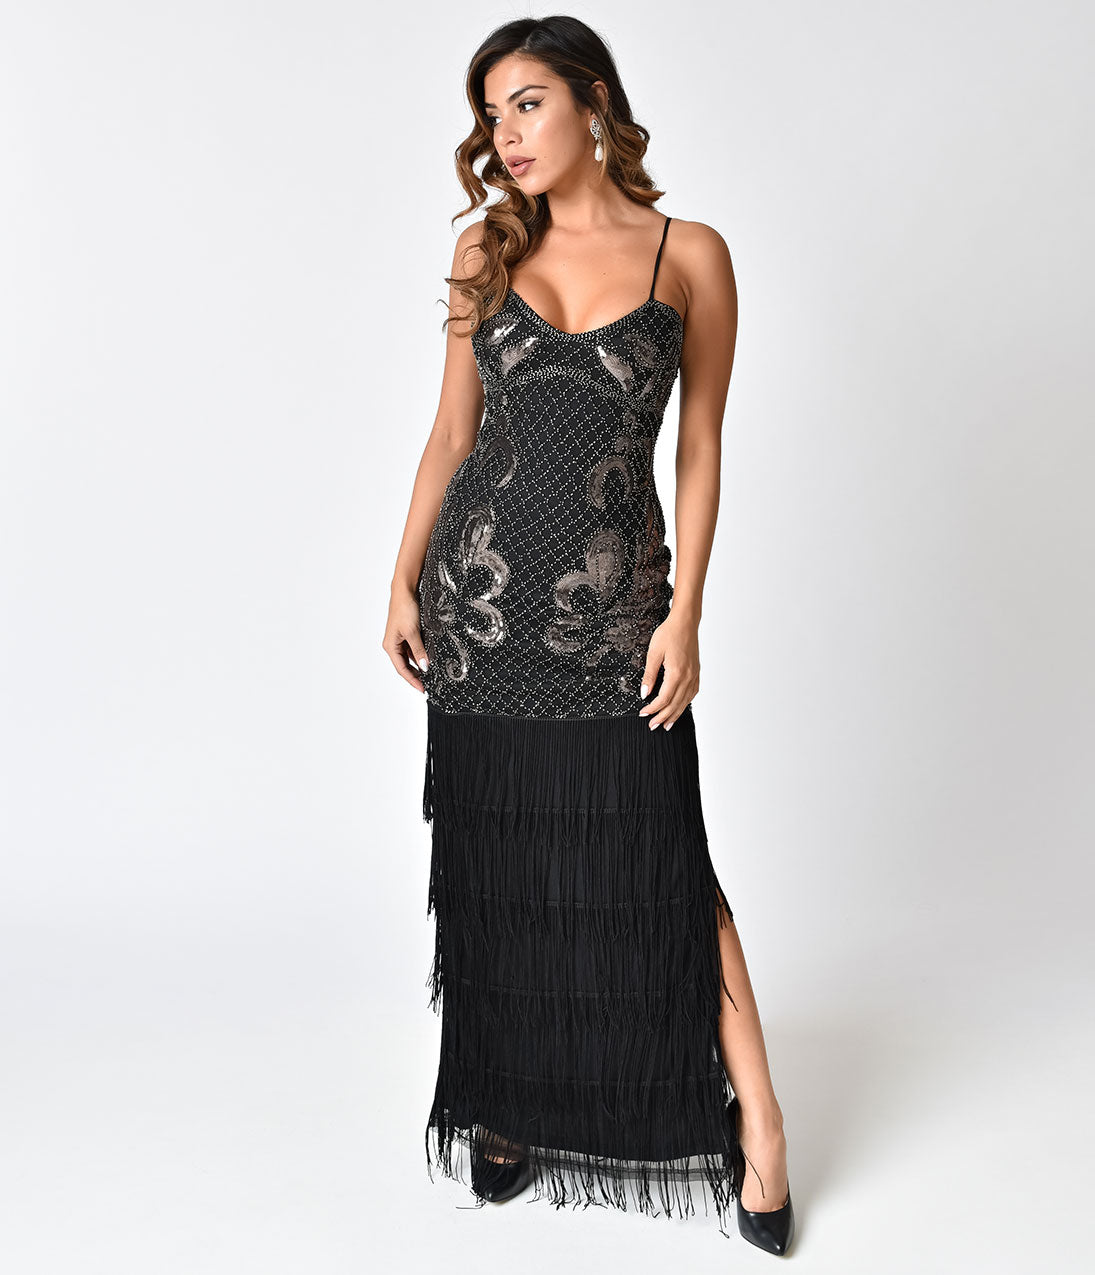 1920s Style Dresses, Flapper Dresses Vintage Style Black Beaded Sexy Fringe Long Cocktail Dress $114.00 AT vintagedancer.com